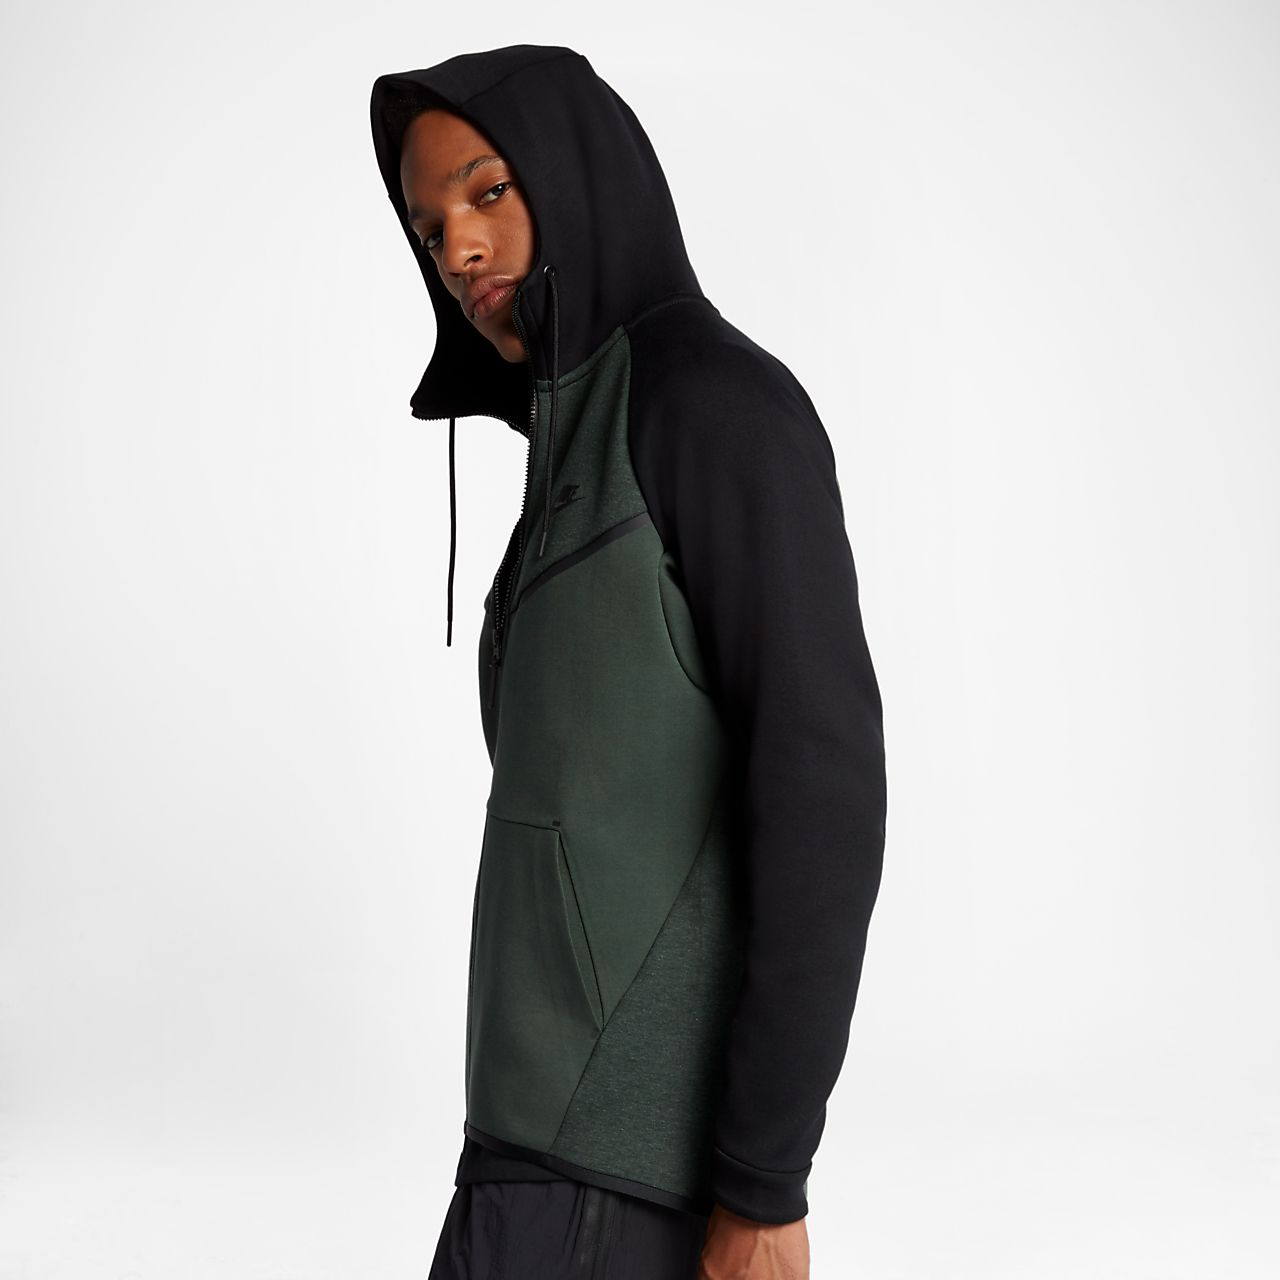 a01f3522ec5a Nike Sportswear Tech Fleece Windrunner Men s Full-Zip Hoodie. Nike ...